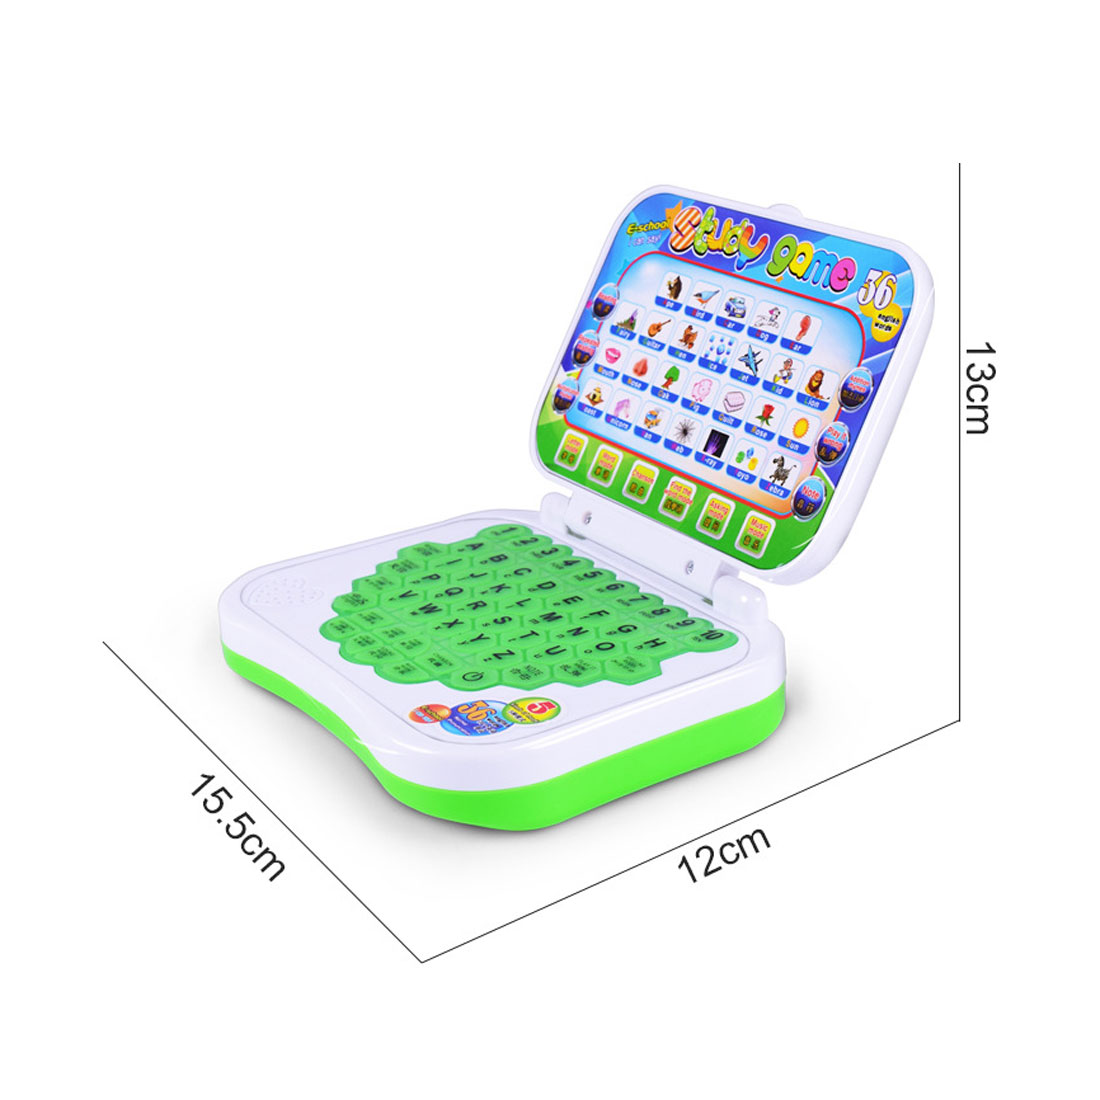 New Baby Kids Pre School Educational Learning Study Toy Laptop Computer Game Educational Toy Send in Random in Learning Machines from Toys Hobbies